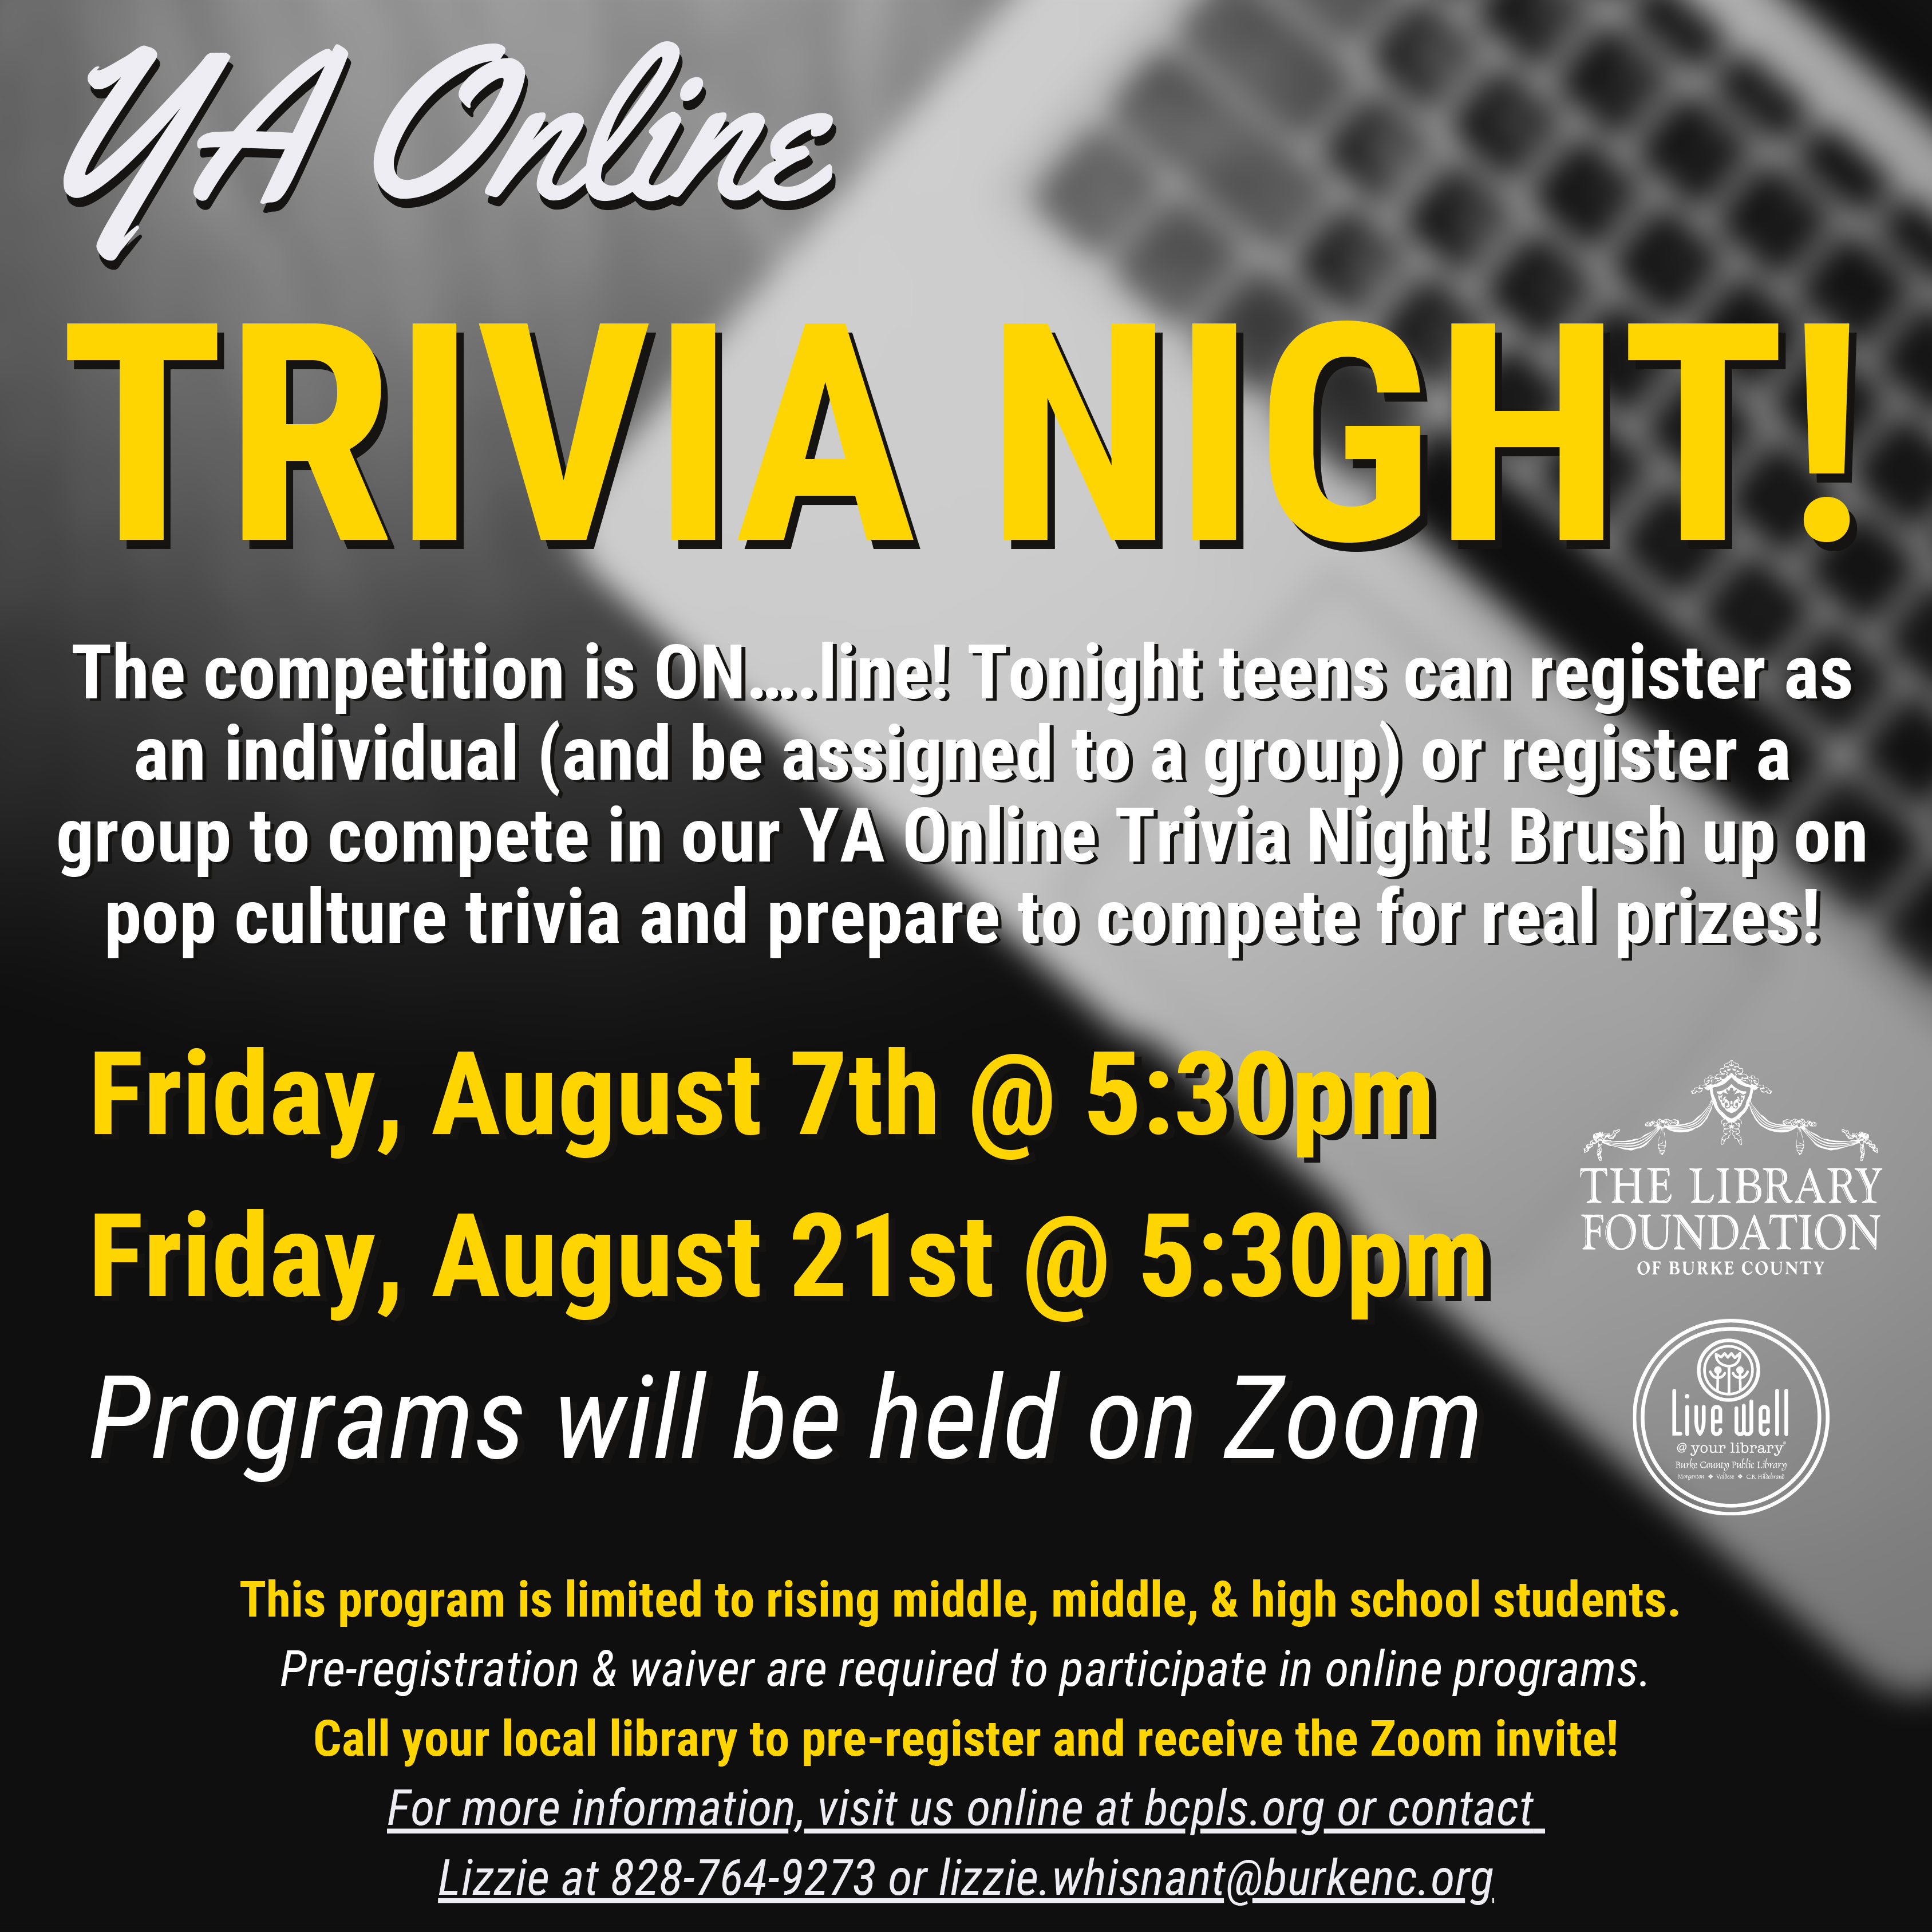 TRIVIA NIGHT! 											Friday, August 7th @ 5:30pm 											Friday, August 21st @ 5:30pm 											Programs will be held on Zoom 											The competition is ON….line! Tonight teens can register as 											an individual (and be assigned to a group) or register a 											group to compete in our YA Online Trivia Night! Brush up on 											pop culture trivia and prepare to compete for real prizes! 											YA Online 											This program is limited to rising middle, middle, & high school students. 											Pre-registration & waiver are required to participate in online programs. 											Call your local library to pre-register and receive the Zoom invite! 											For more information, visit us online at bcpls.org or contact 											Lizzie at 828-764-9273 or lizzie.whisnant@burkenc.org